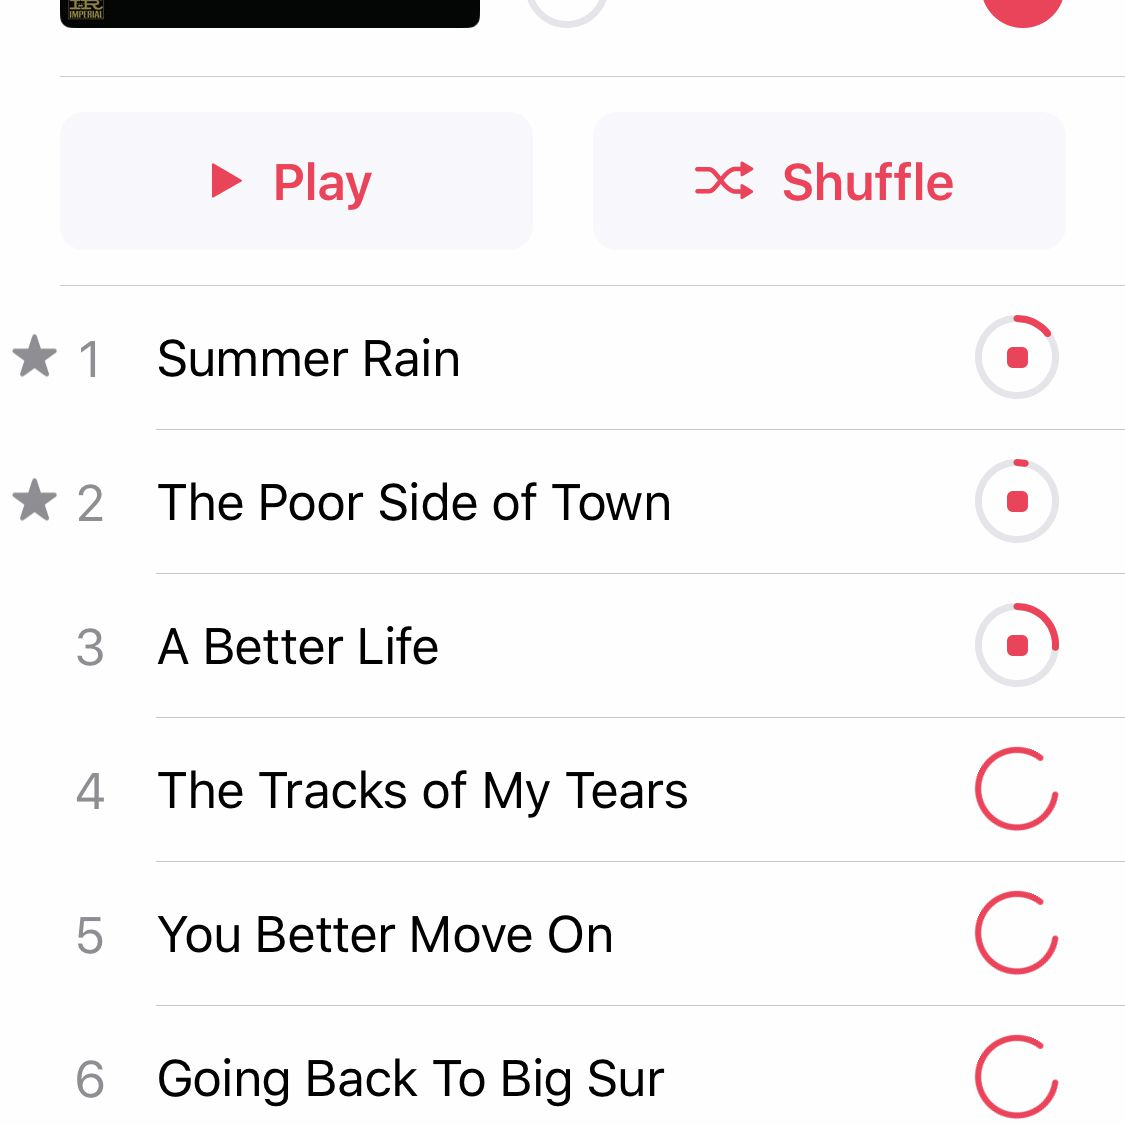 How to Use Apple Music on iPhone and iPad